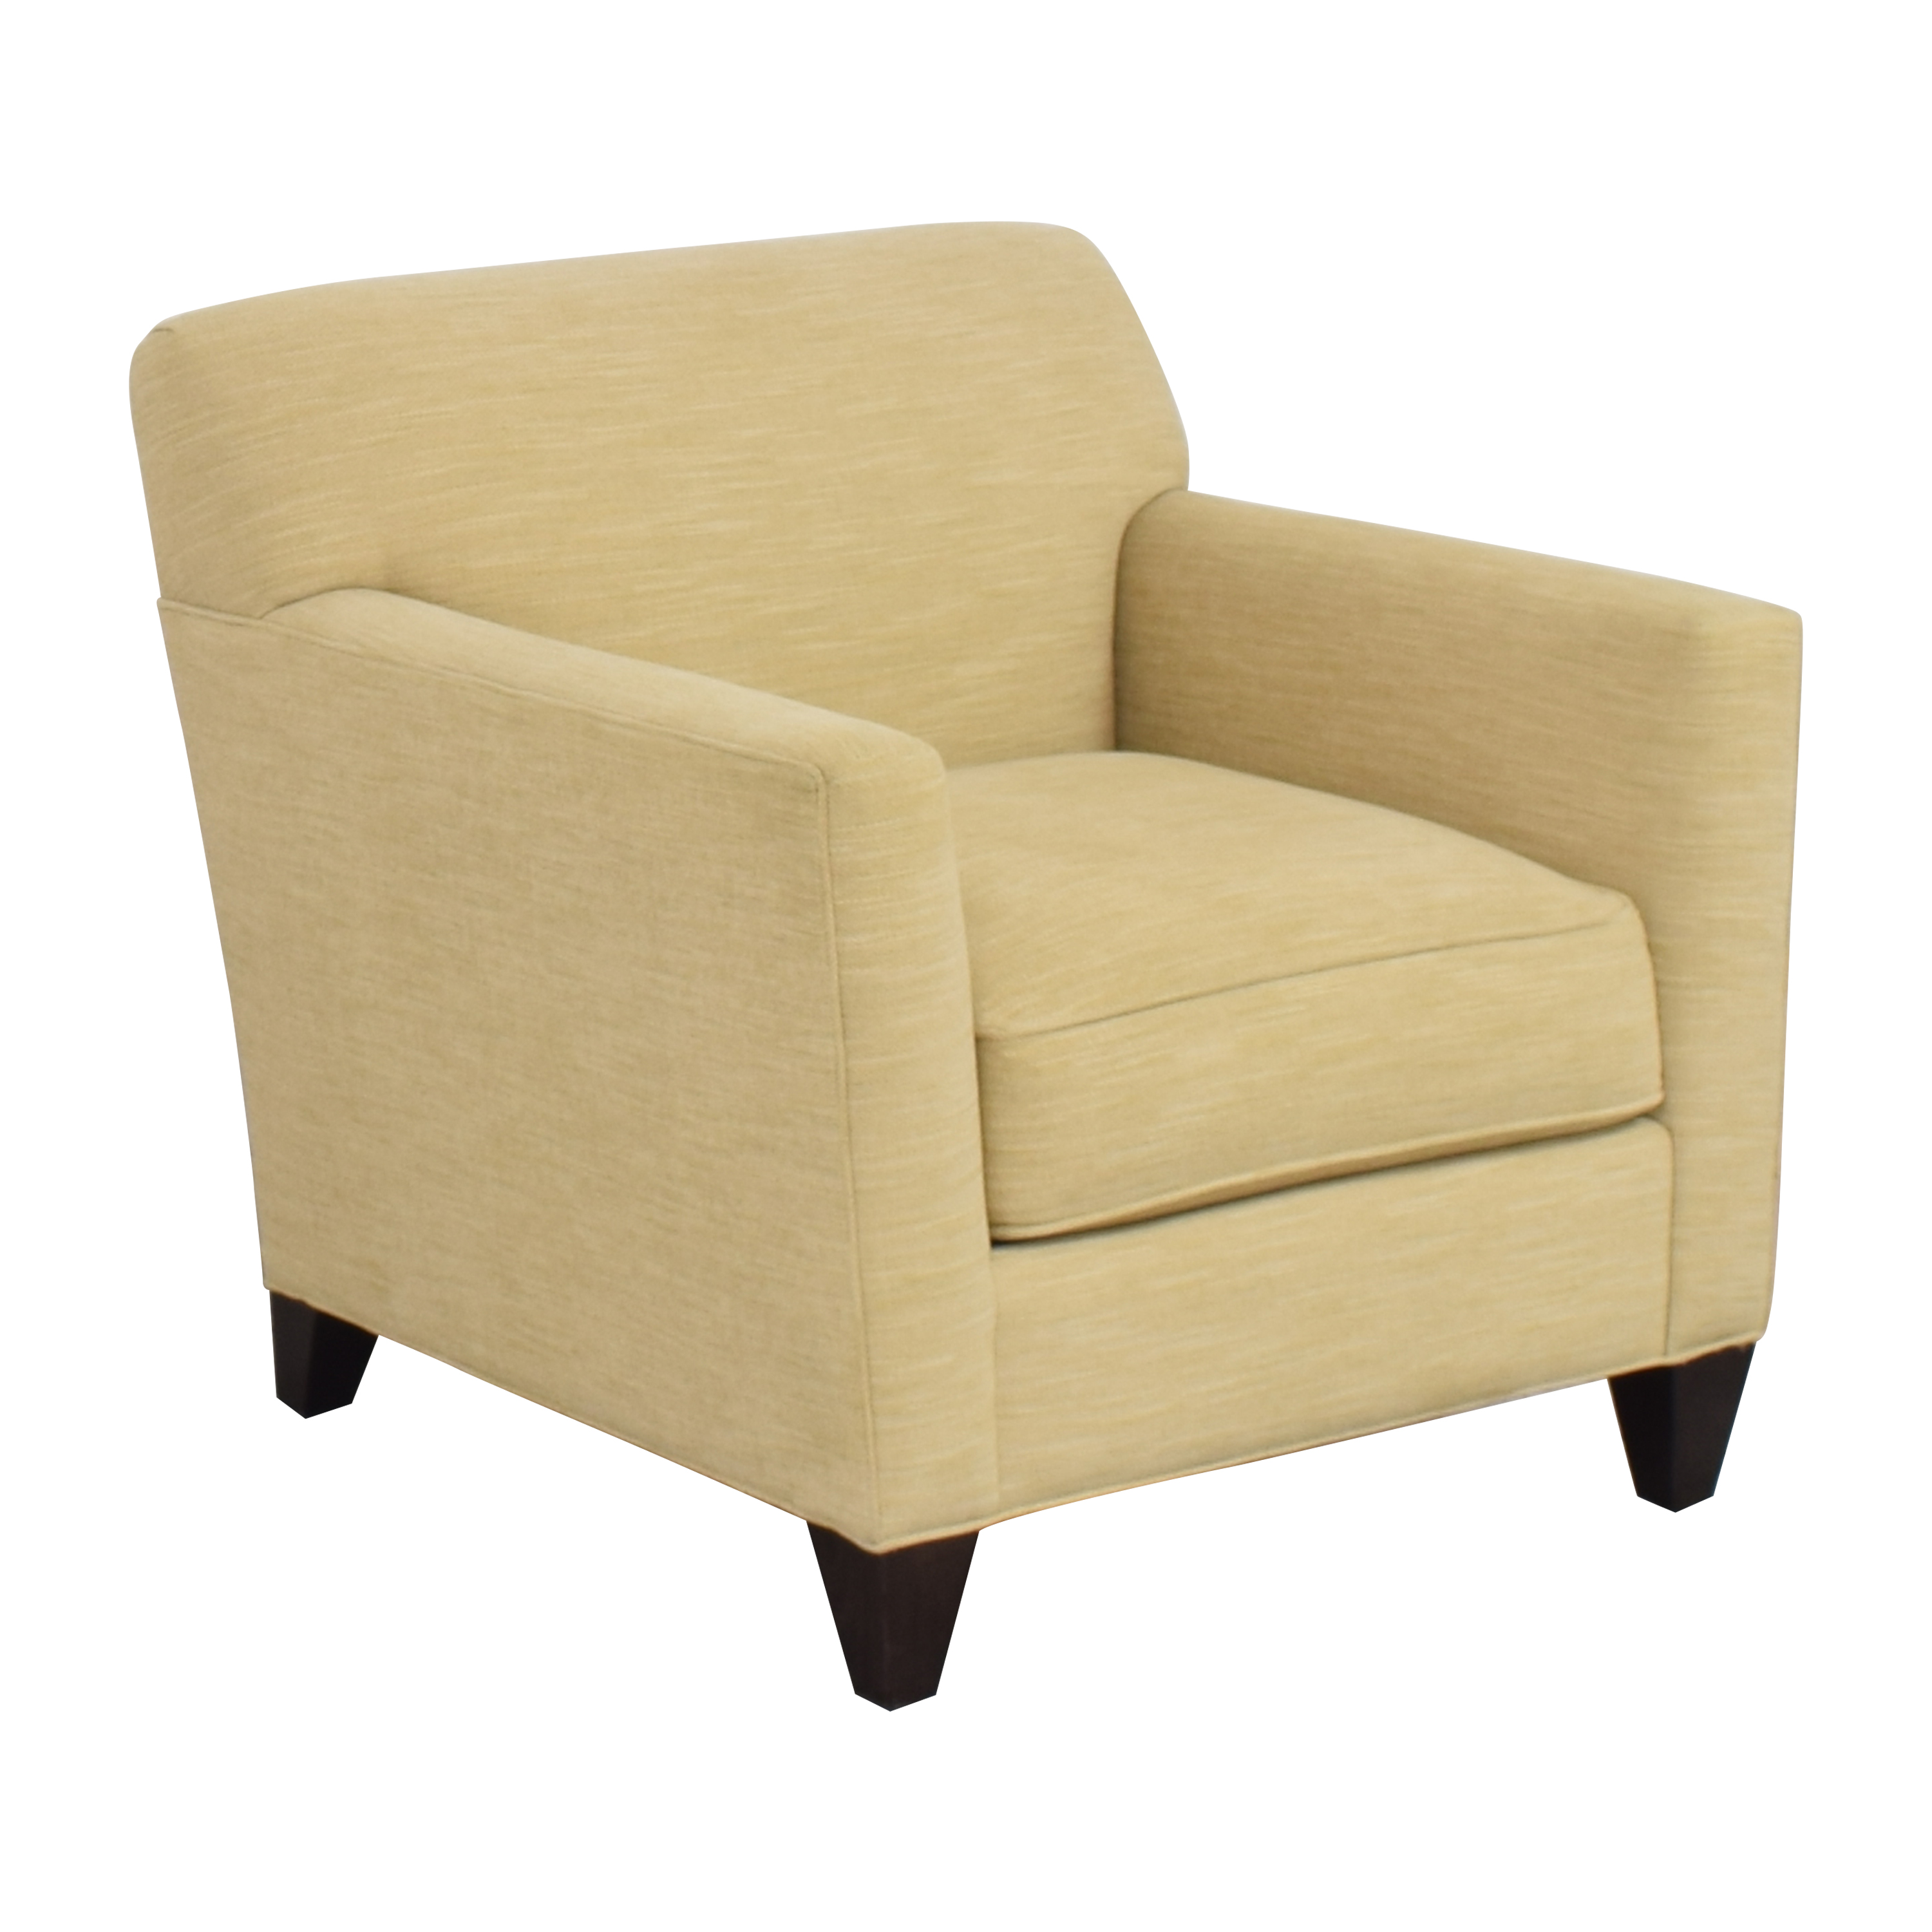 Crate & Barrel Crate & Barrel Hennessy Chair used